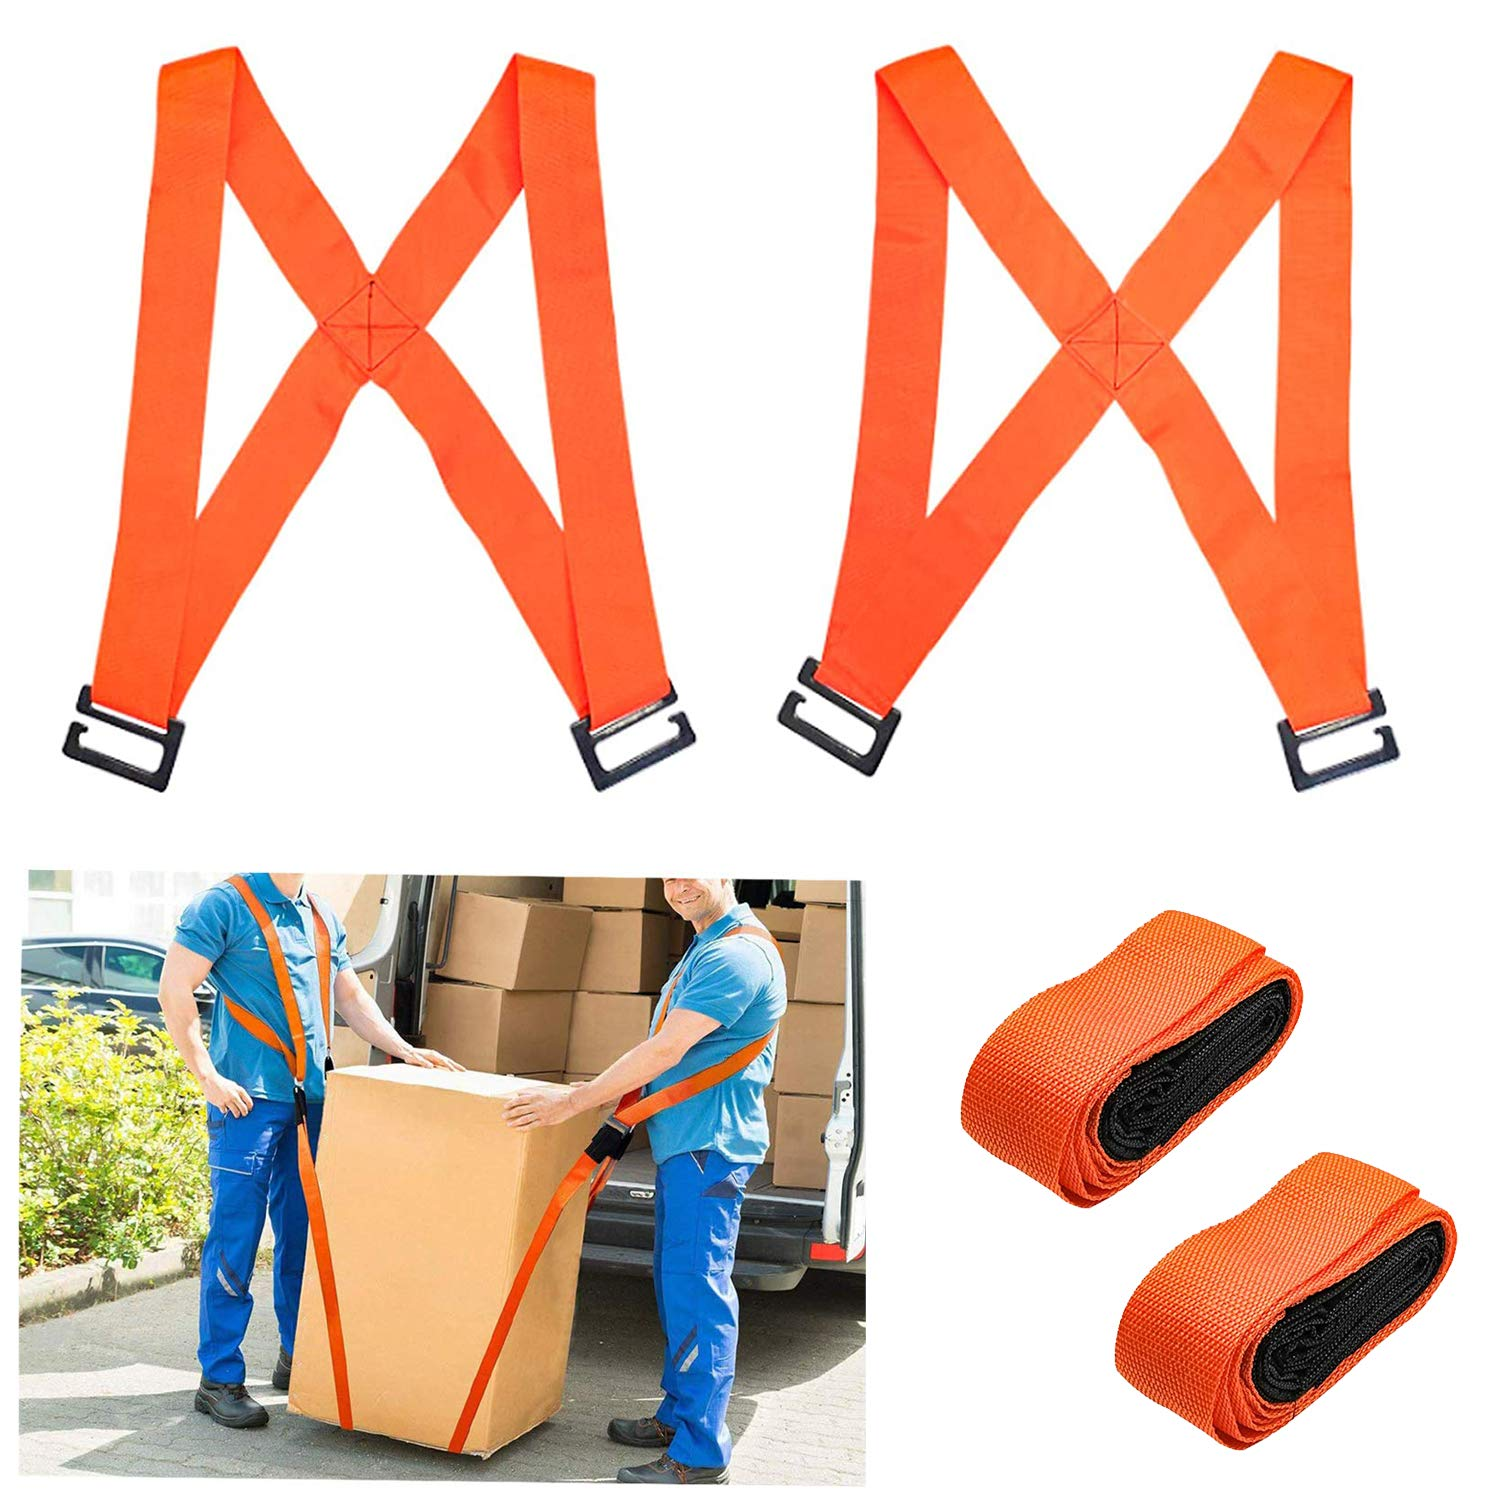 Lifting and Moving Straps,Material Handling Straps,High Density Multifunctional Adjustable Moving Belts Up to 800lbs for Carrying Goods, Furniture, Appliances - Orange